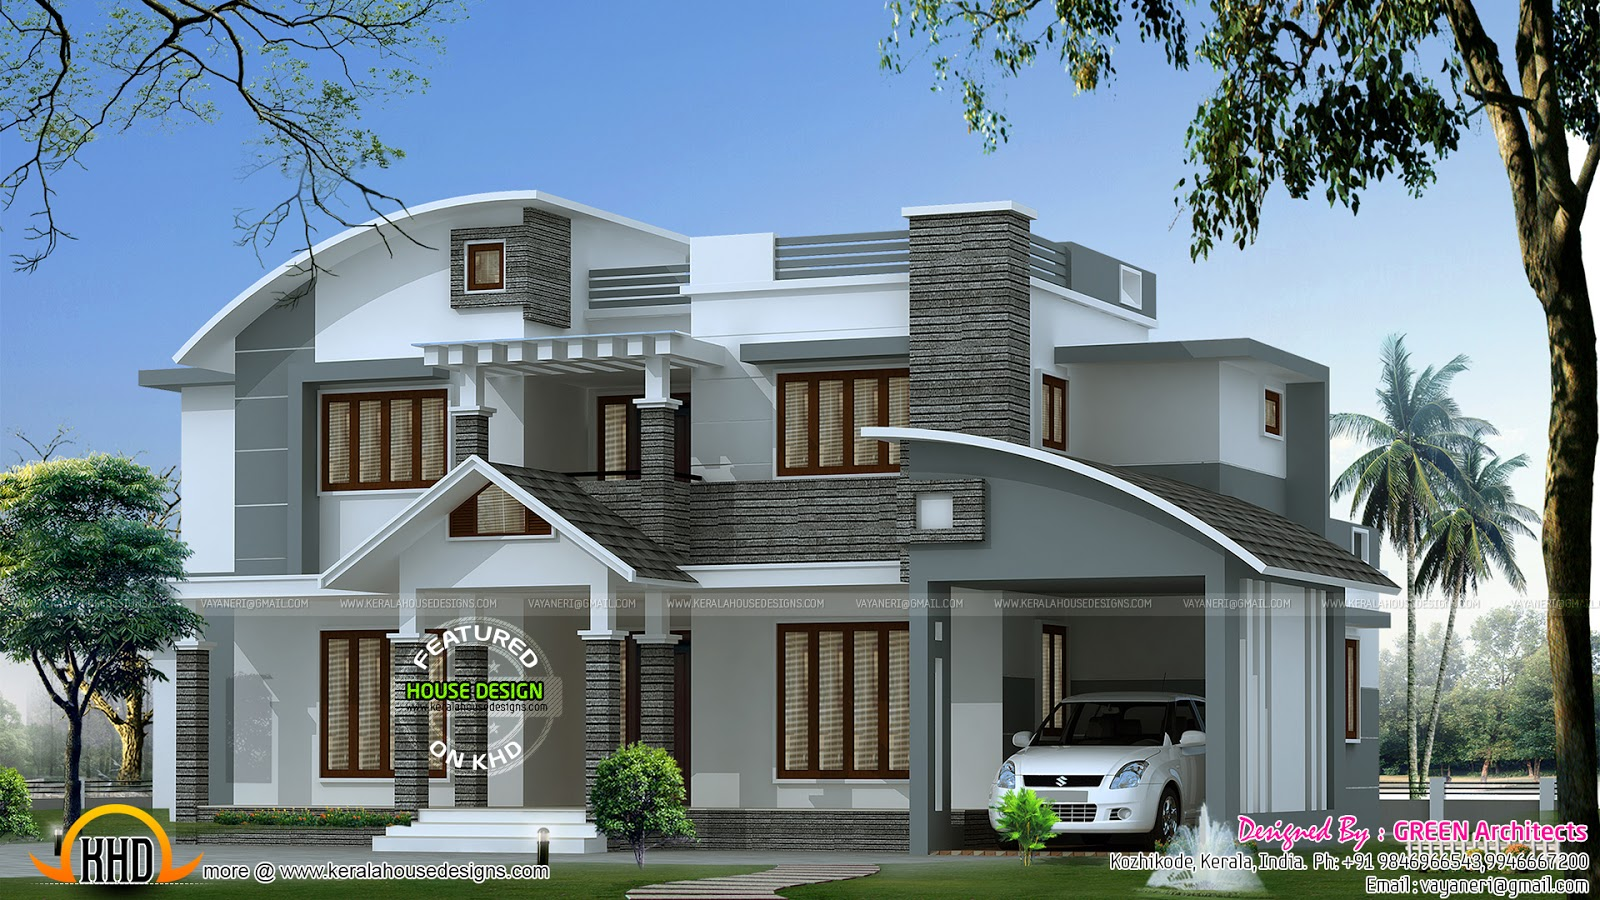 Contemporary mix house in 2500 sq ft kerala home design for 3000 sq ft house plans kerala style